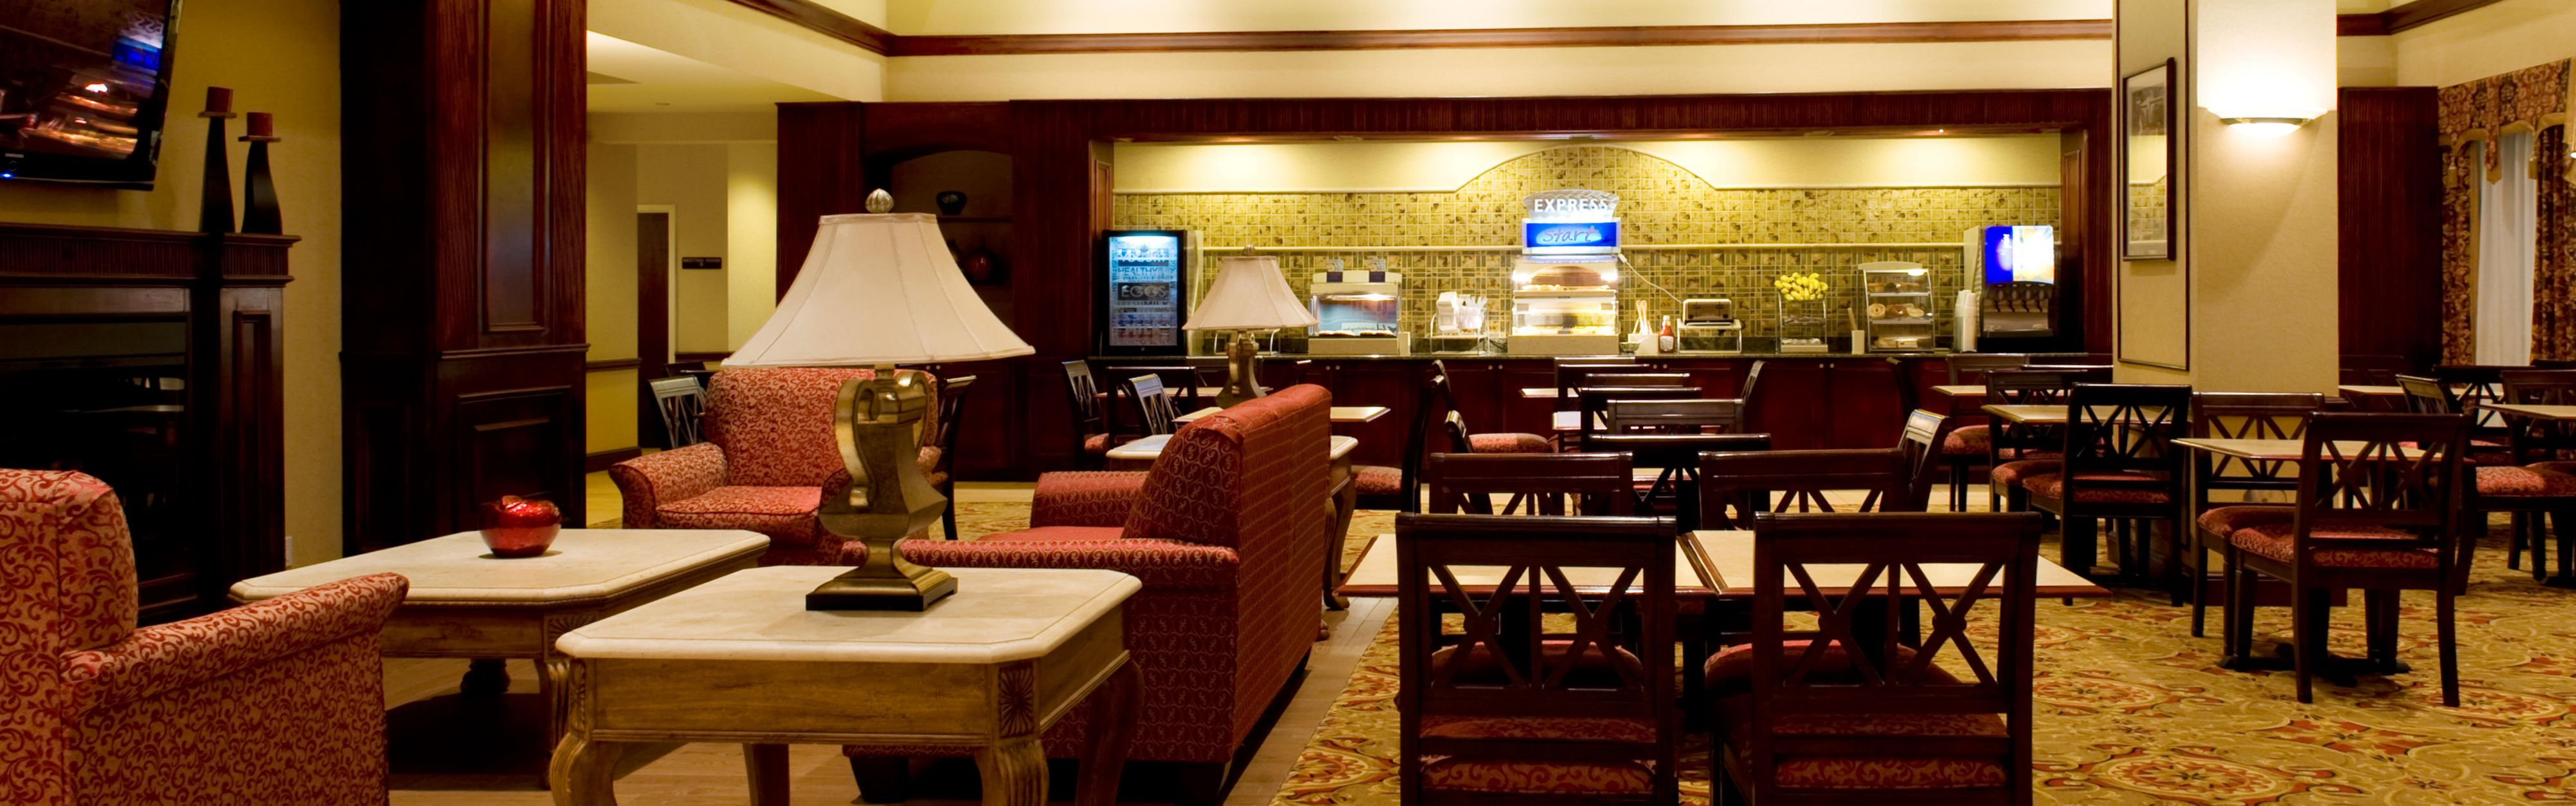 Holiday Inn Express & Suites Dallas Ft. Worth Airport South image 3